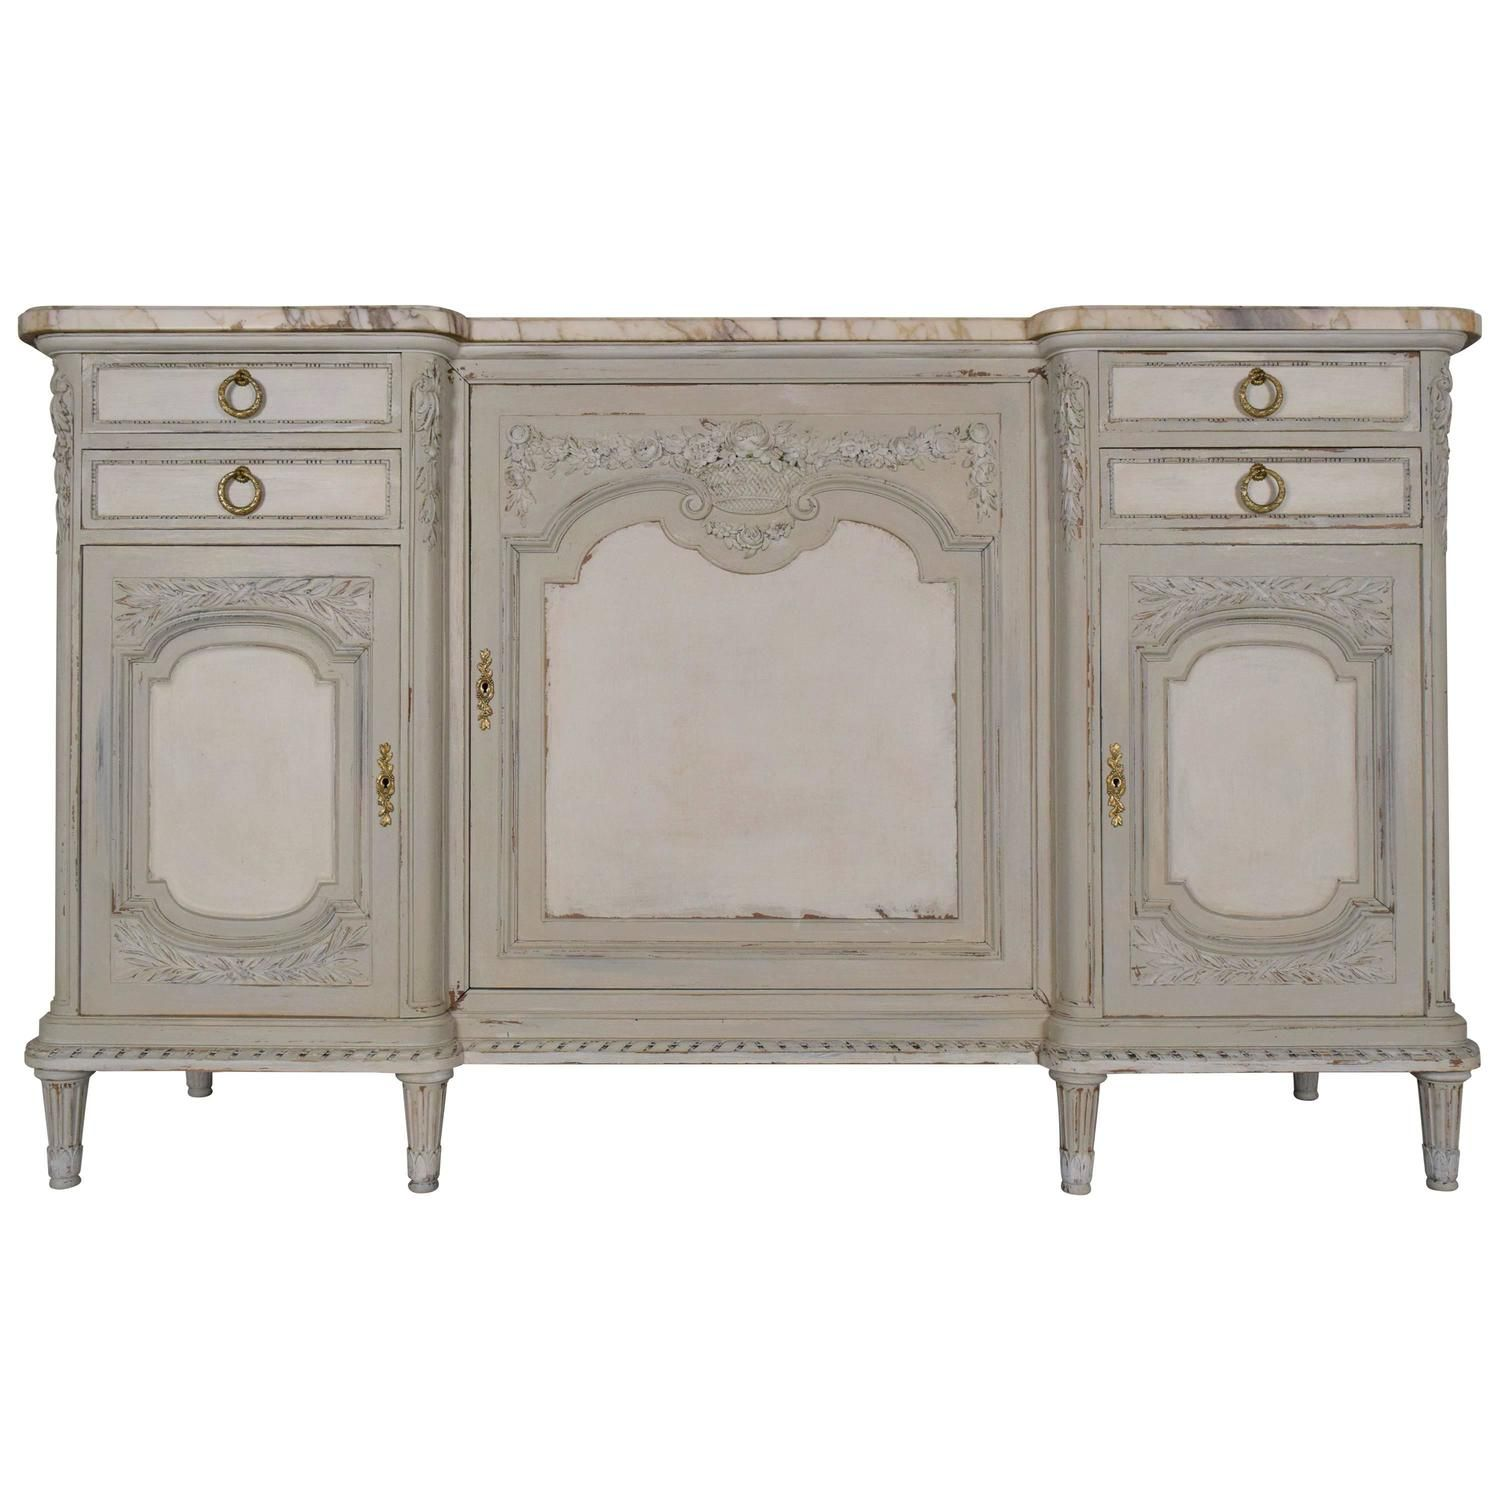 Antique French Louis XVI Painted Sideboard   Painted sideboard ...